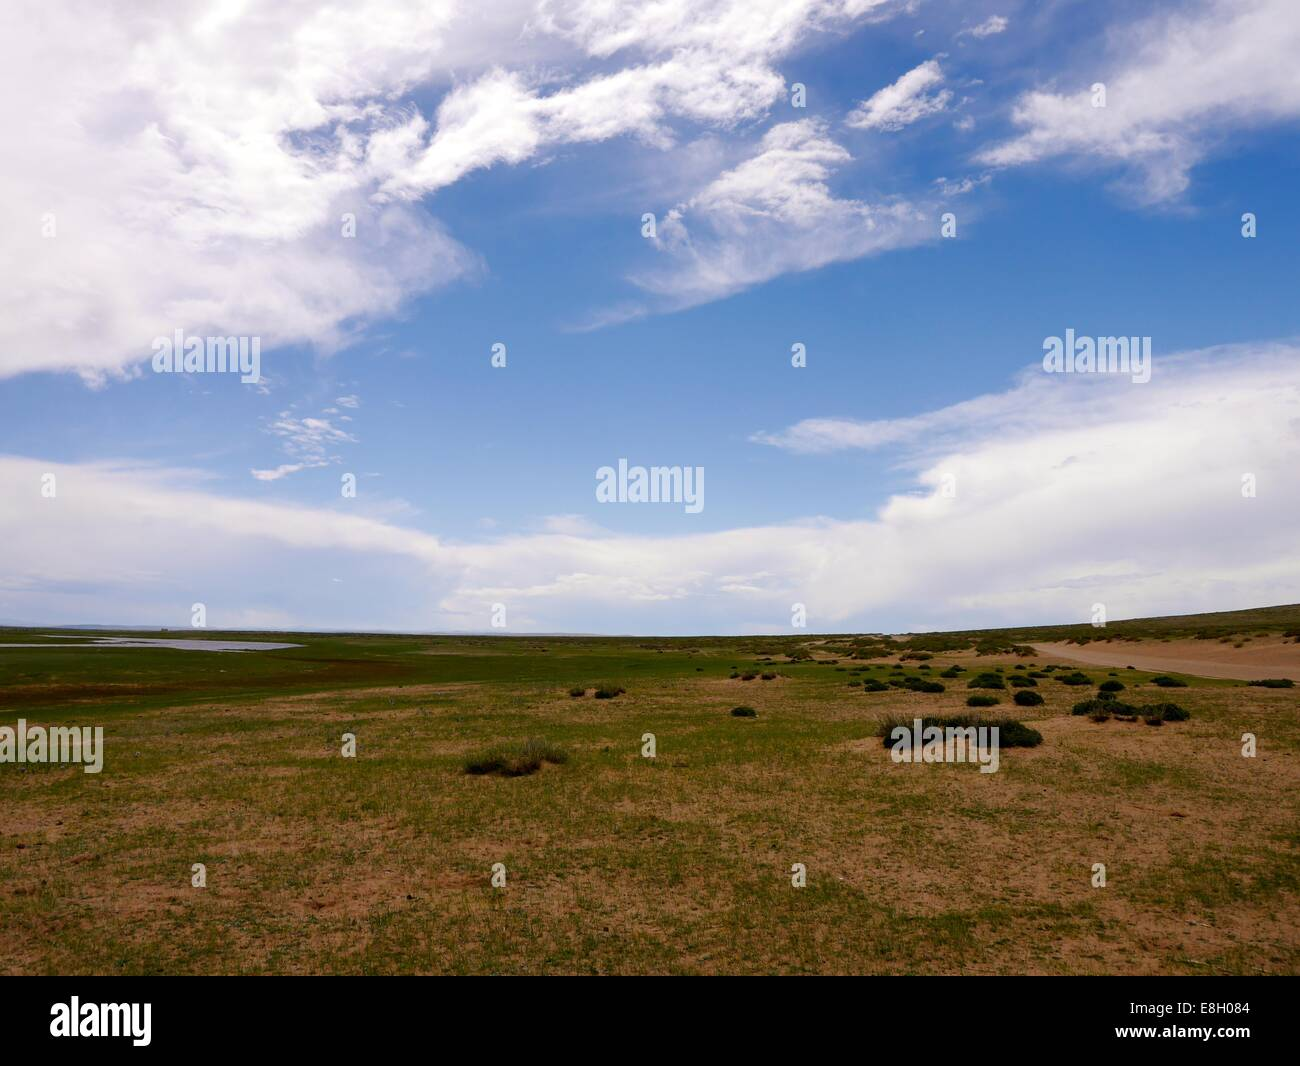 A blue patch of sky over Ogii Nuur district, Mongolia. - Stock Image